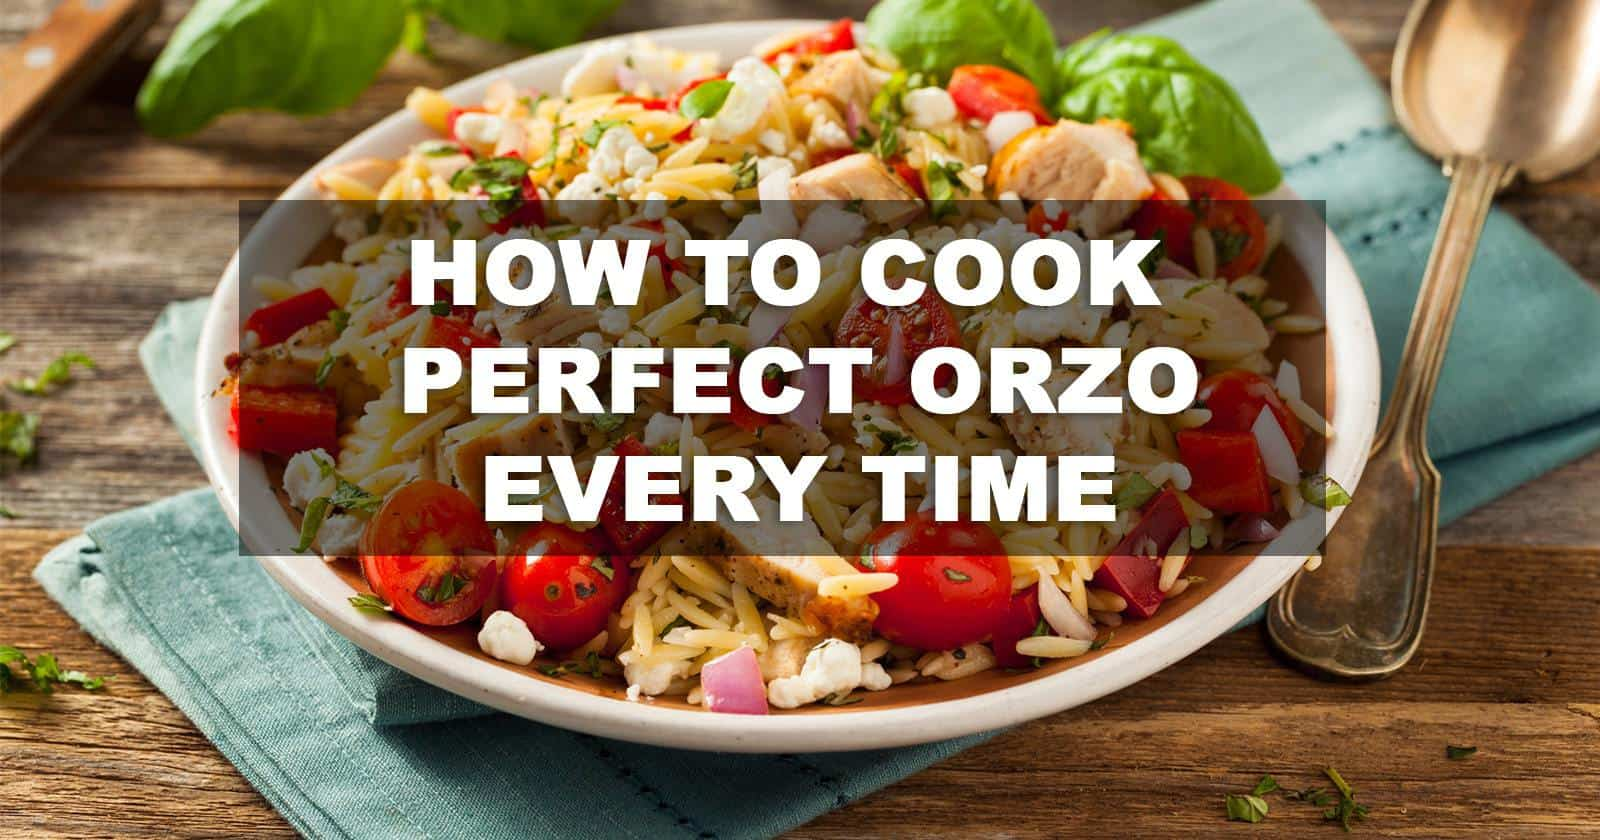 How to cook orzo